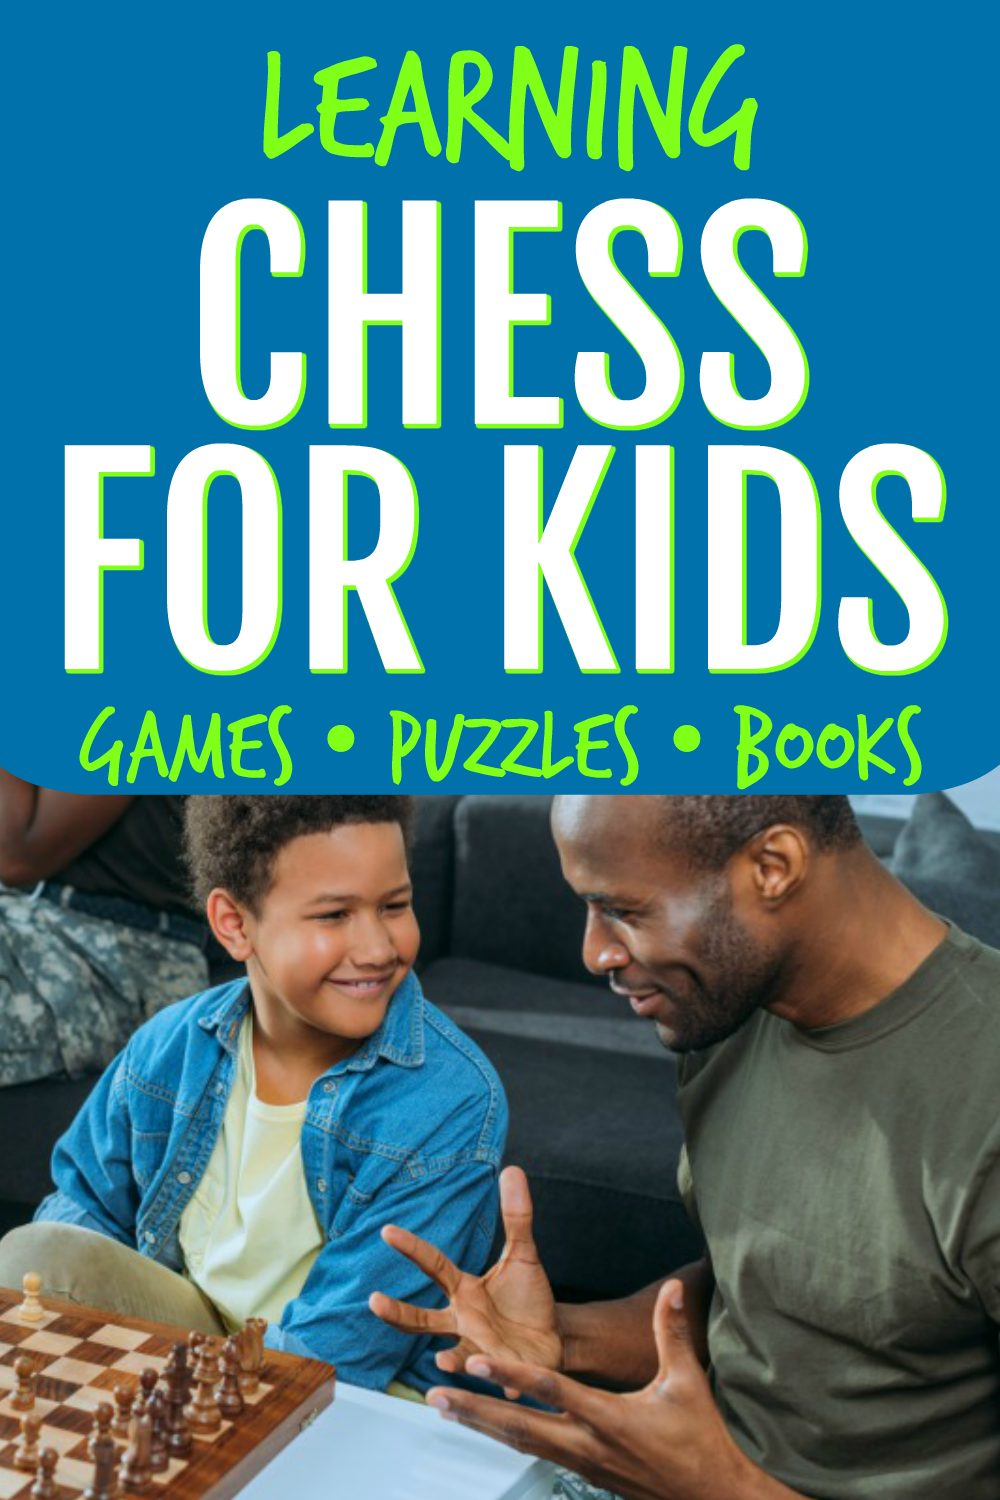 CHESS FOR KIDS text over an african american dad and son playing chess